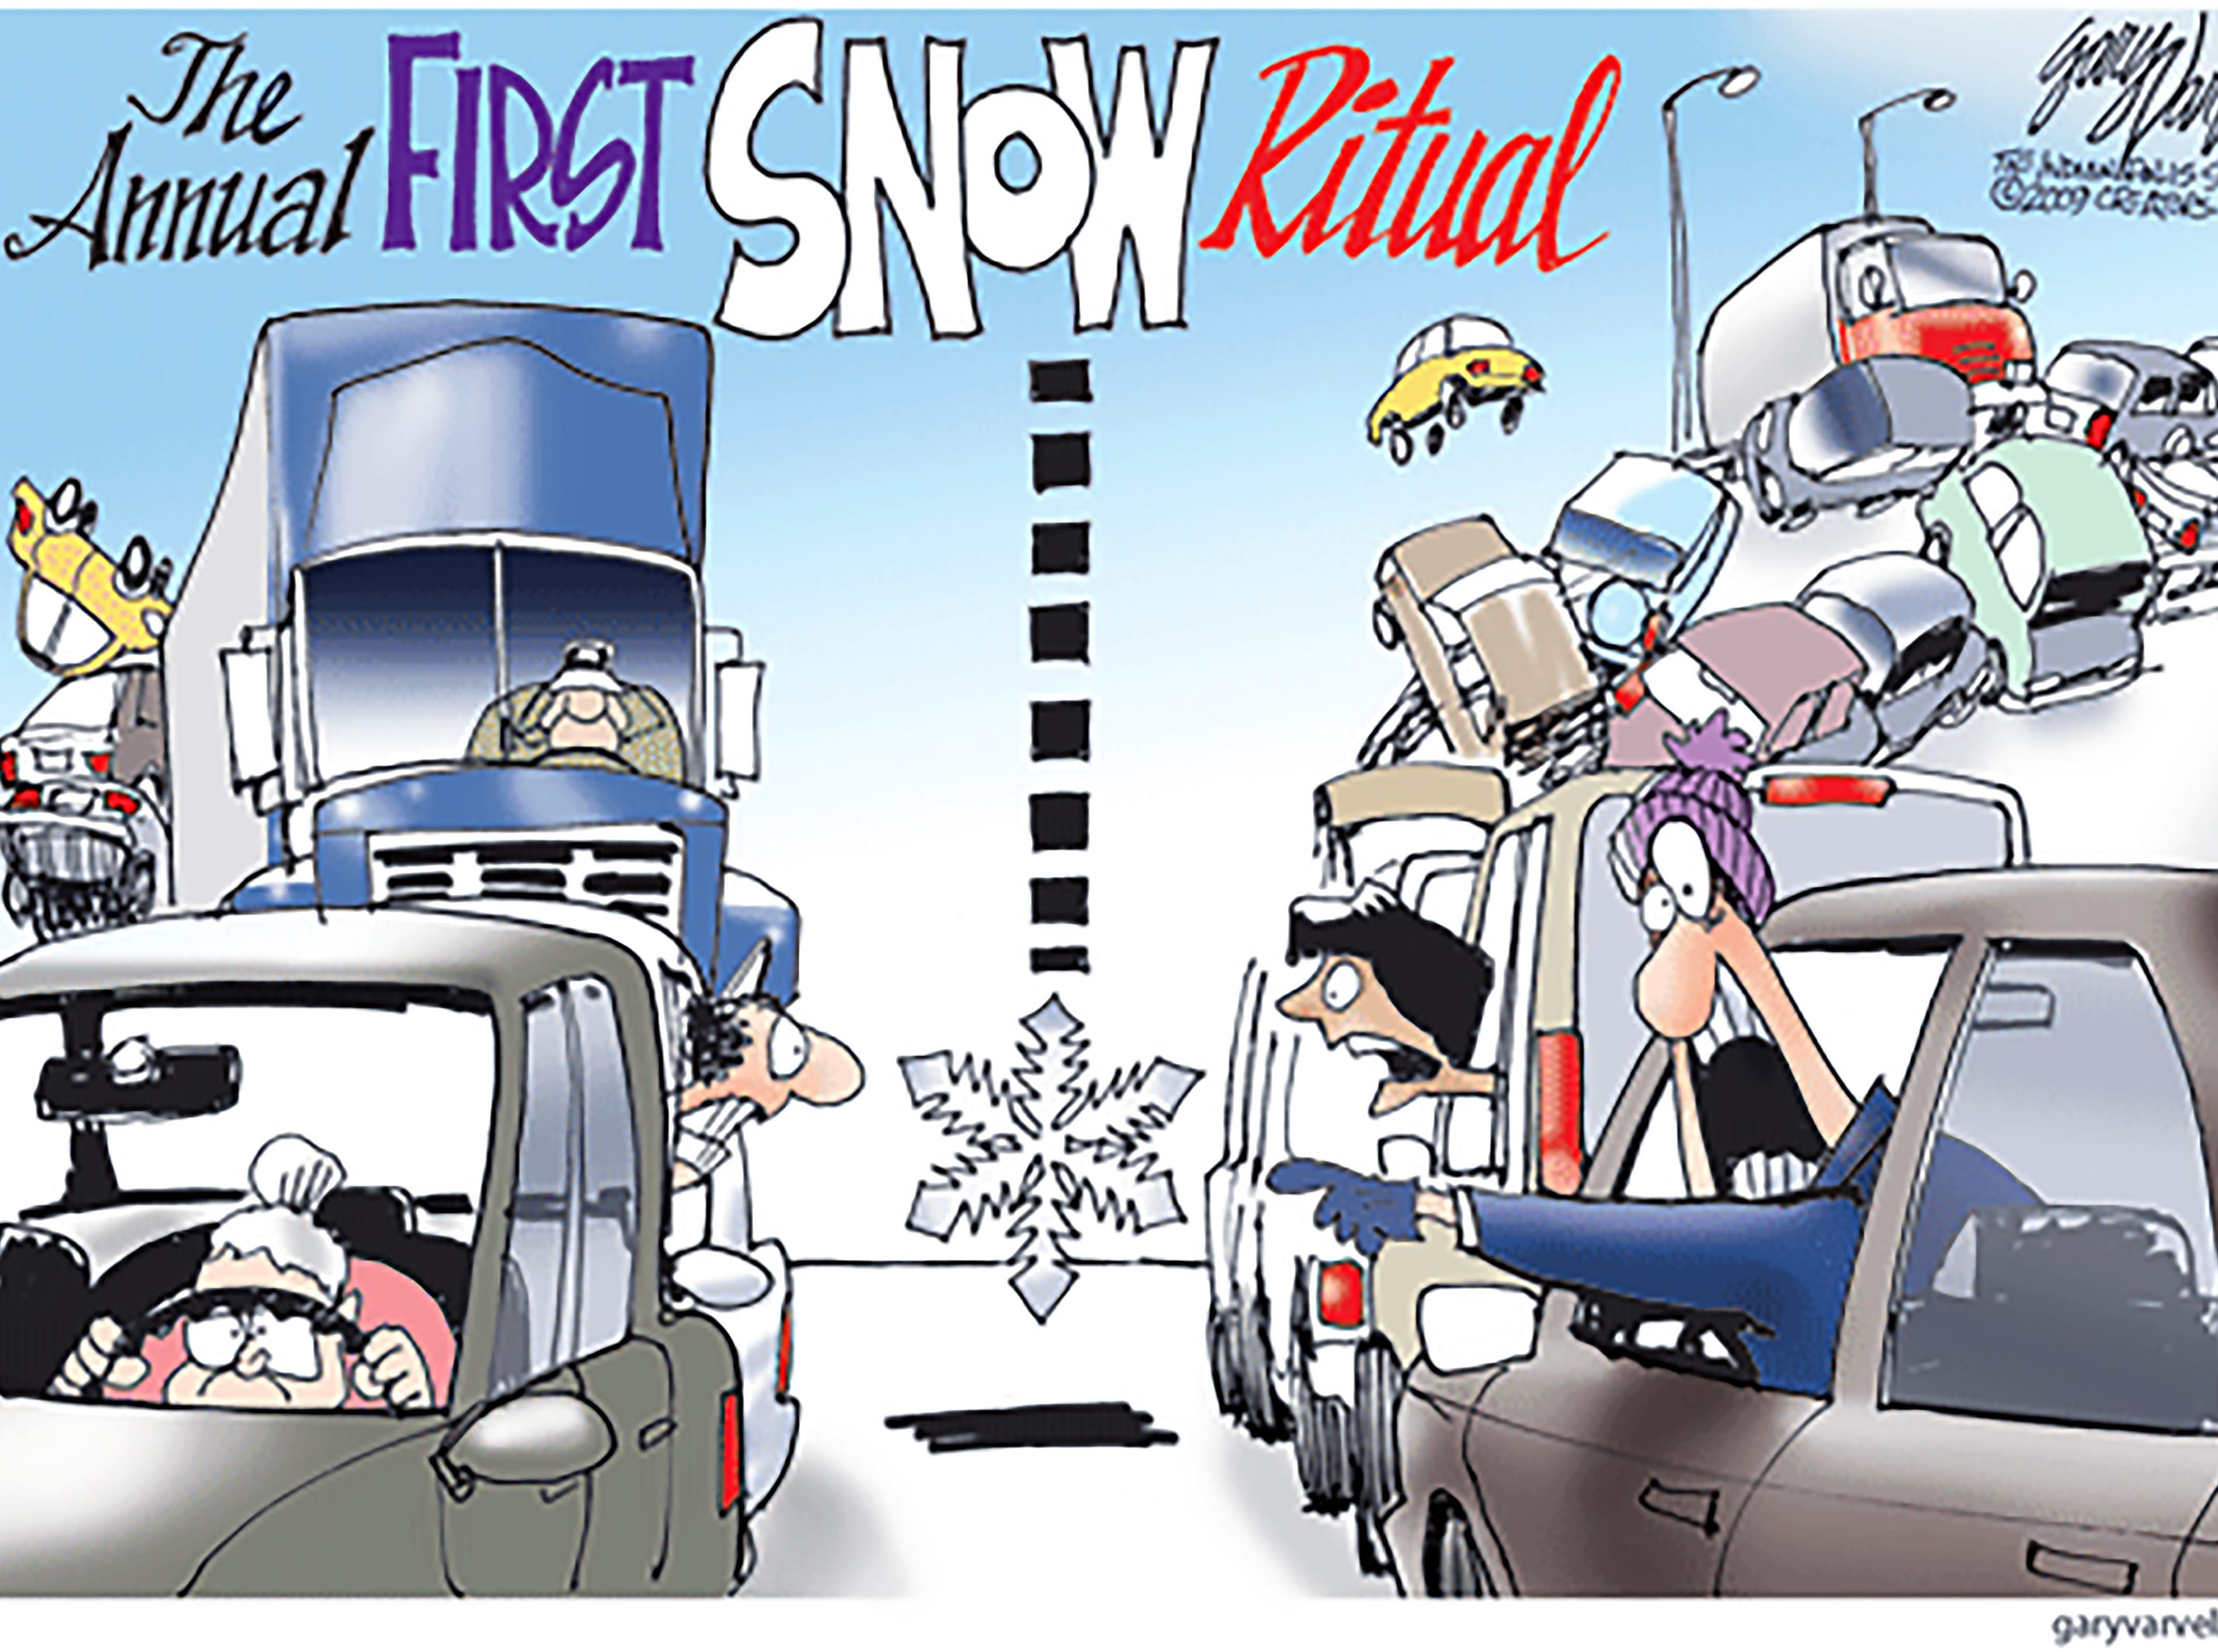 Originally published in December 2009. The cartoonist's homepage, indystar.com/opinion/varvel